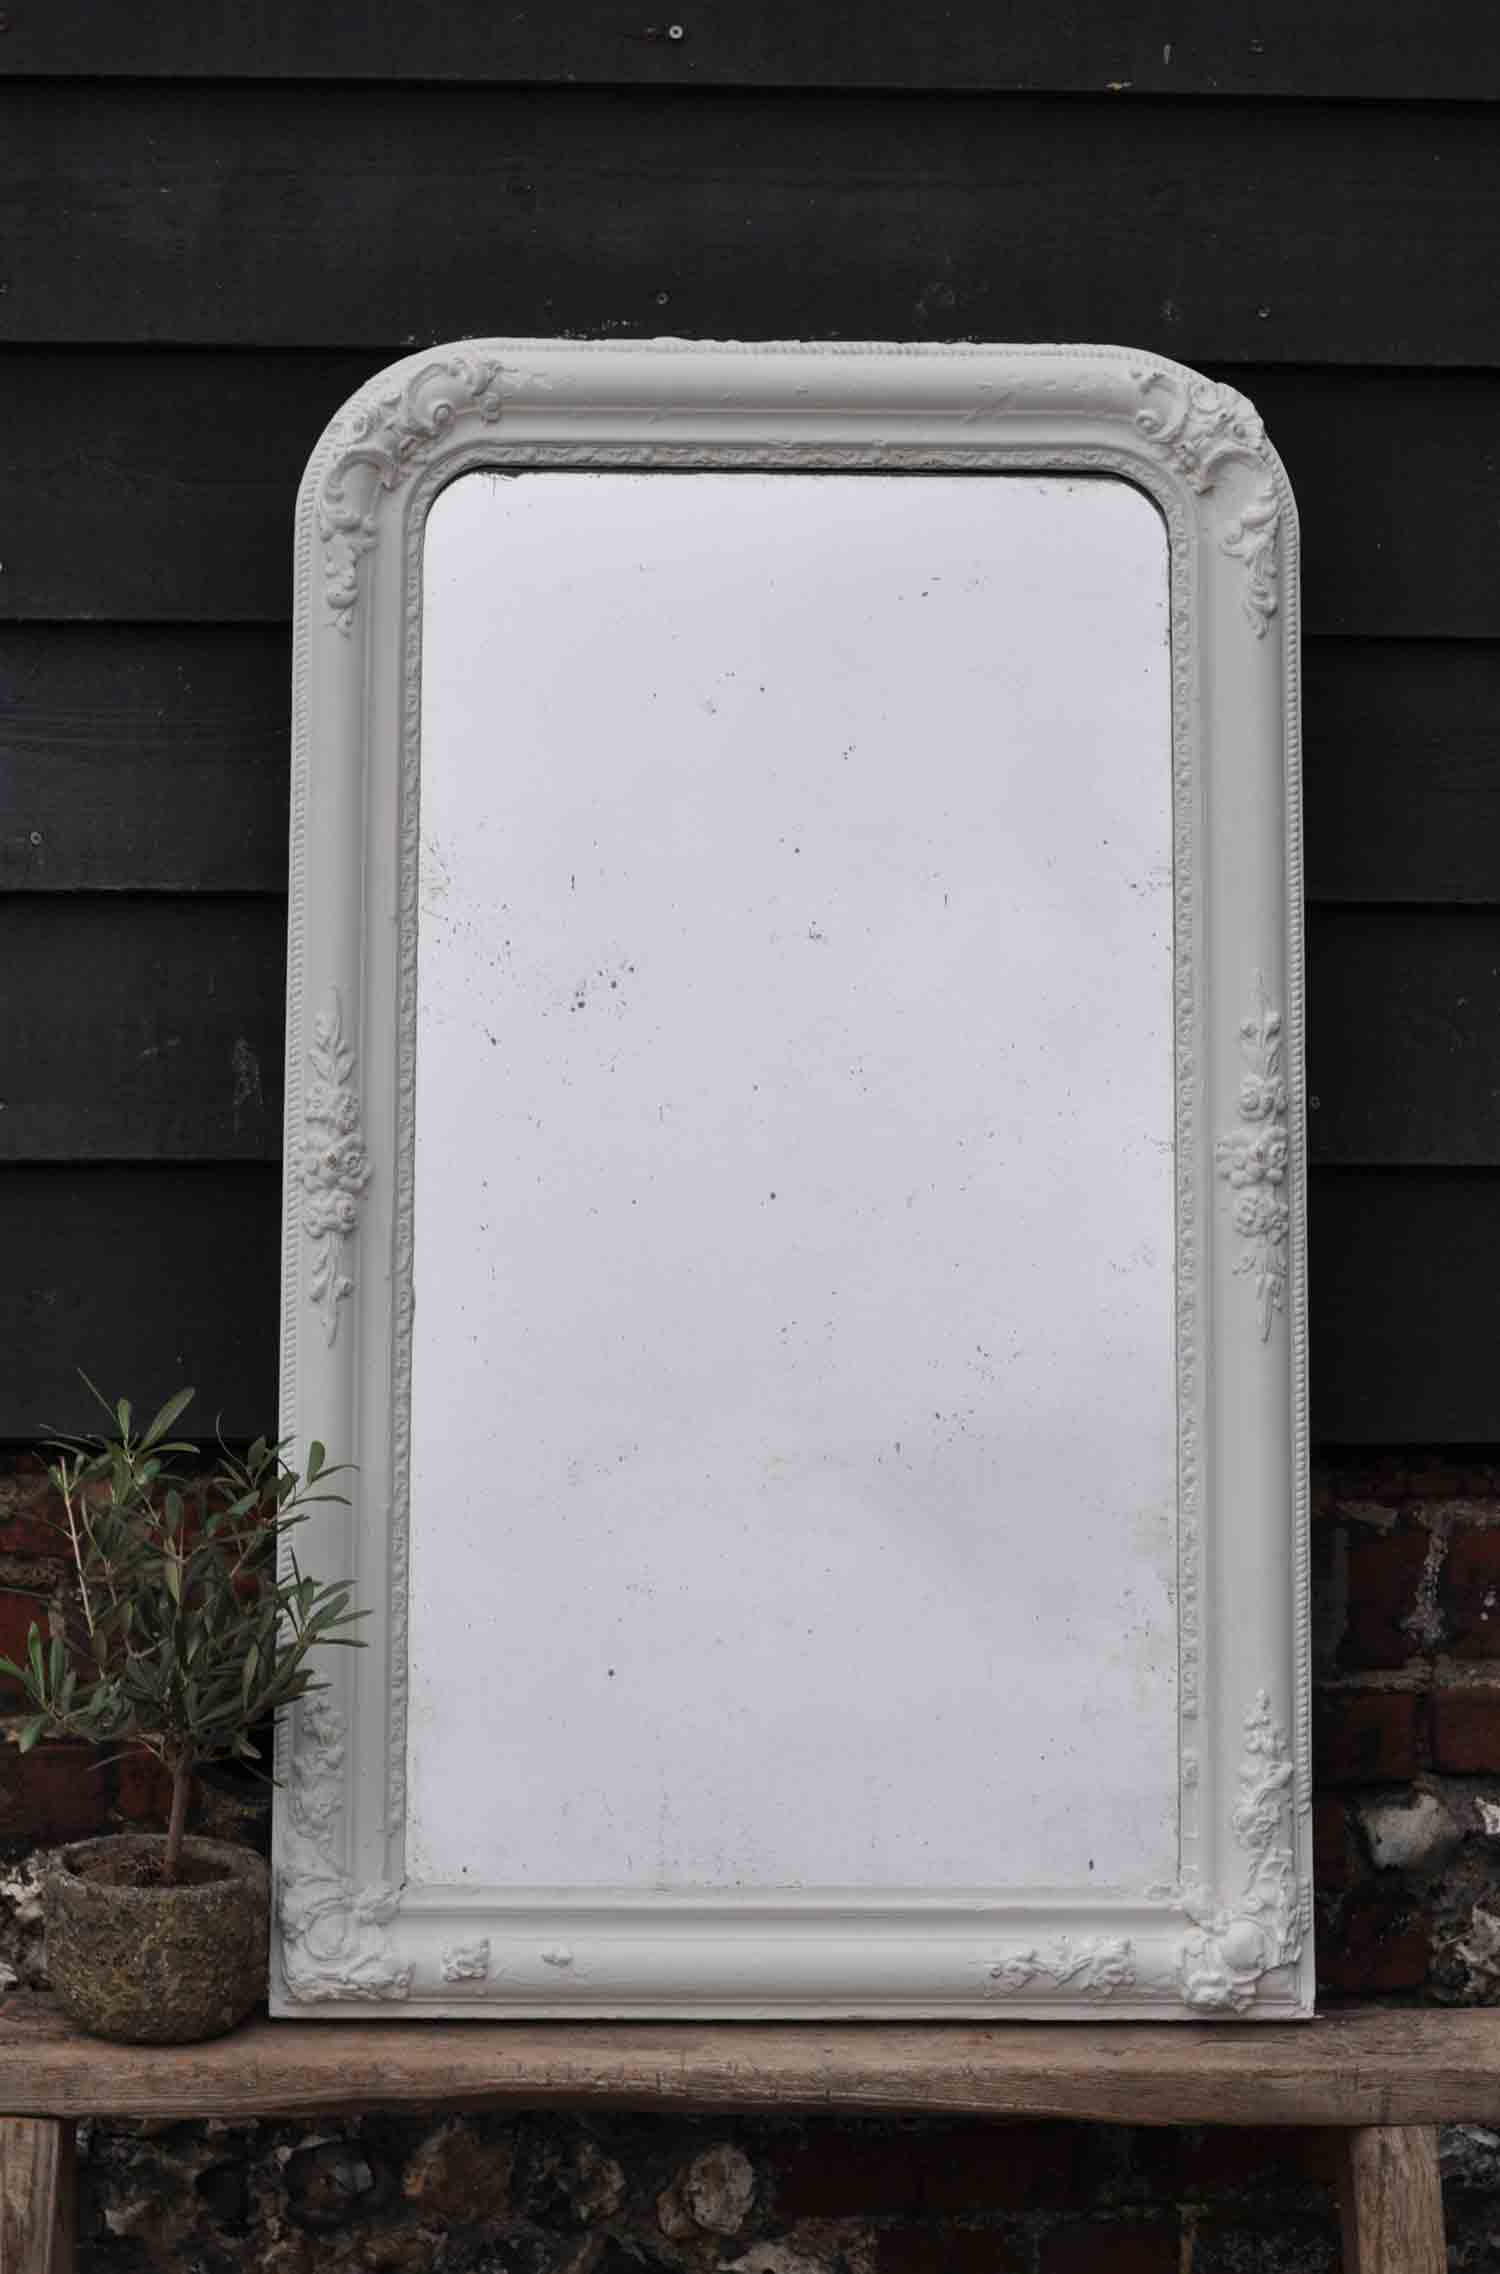 Late 1800's Antique French Ornate Corners Mirror in White